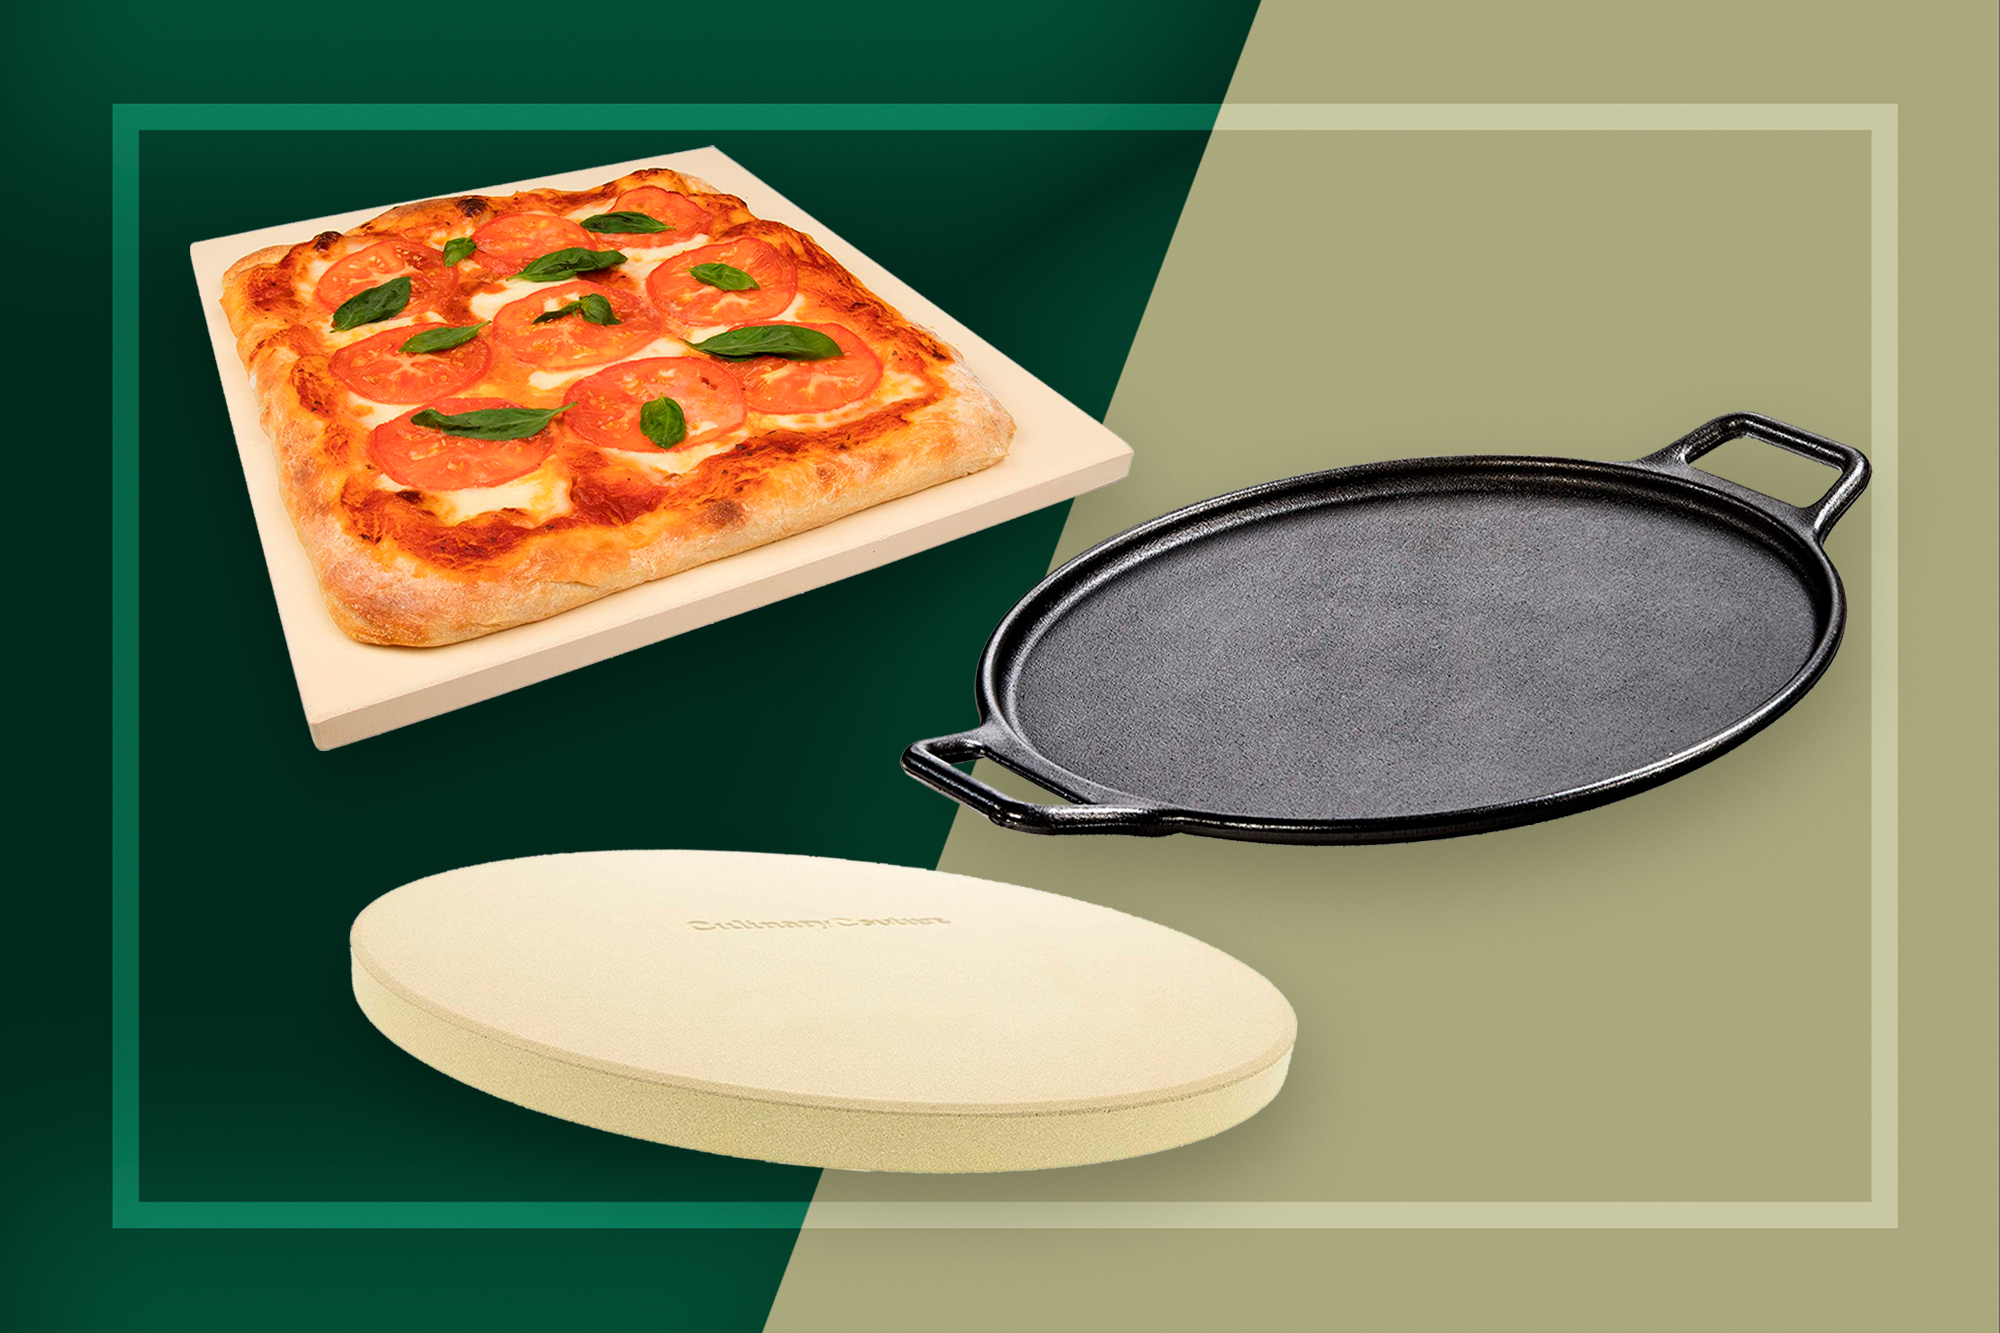 The Best Pizza Stones for Your Kitchen, According to Chefs